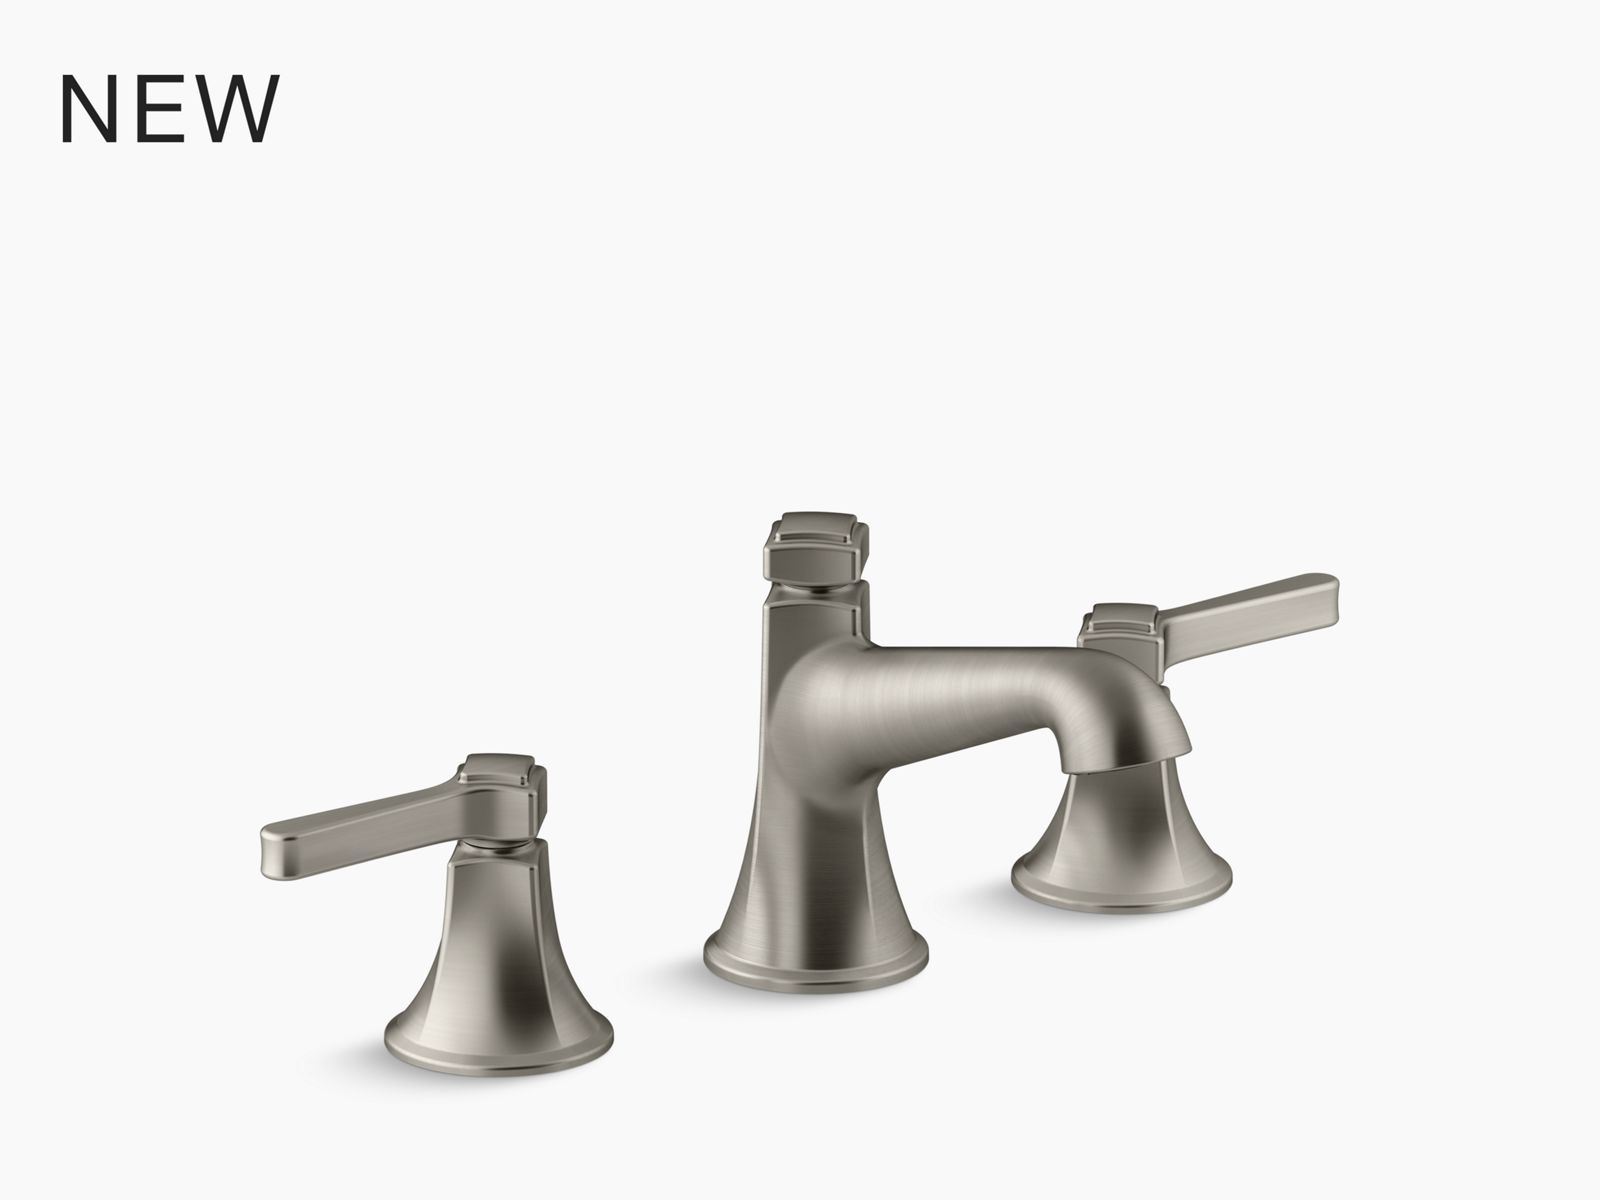 georgeson centerset bathroom sink faucet 1 2 gpm